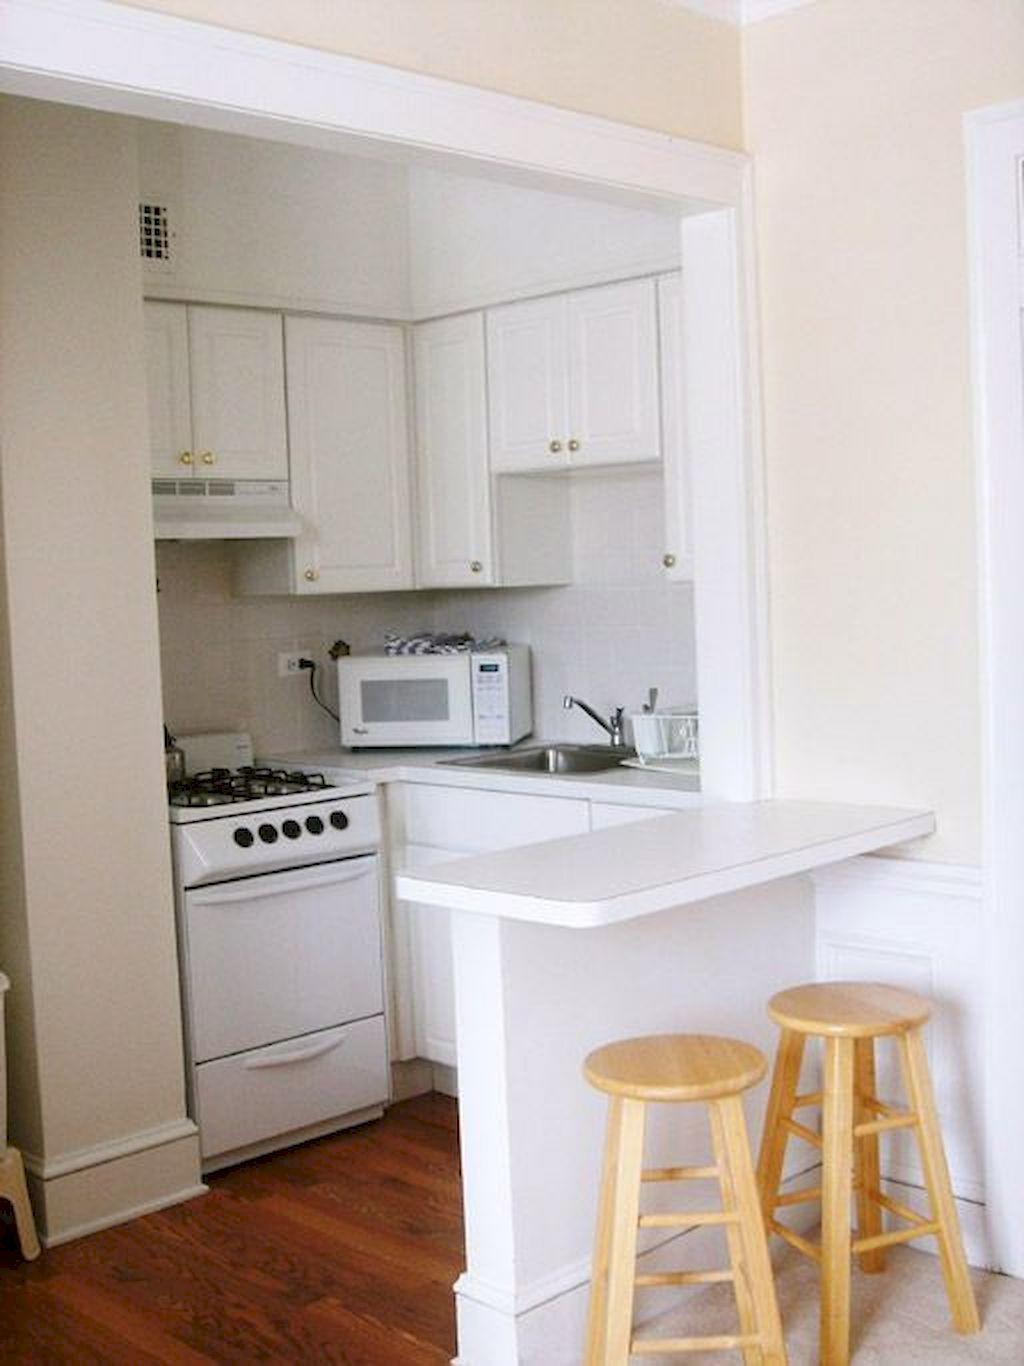 70 Small Apartment Kitchen Ideas On A Budget Small Apartment